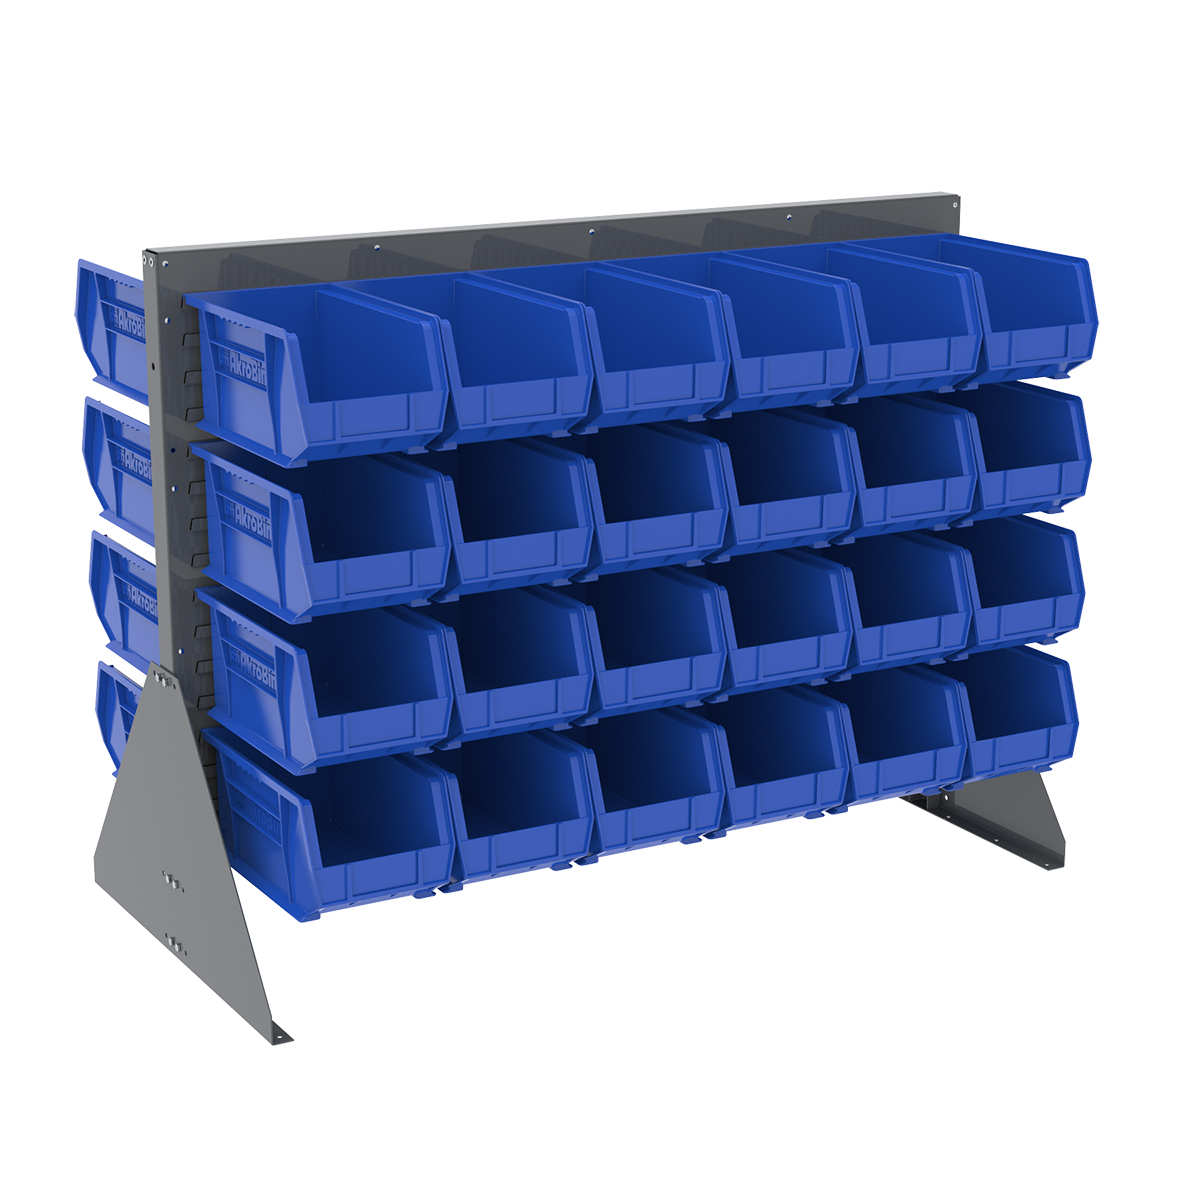 Item DISCONTINUED by Manufacturer.  Low Profile Floor Rack, 2-Sided w/ 48 AkroBins, Gray/Blue (30607GY240B).  This item sold in carton quantities of 1.